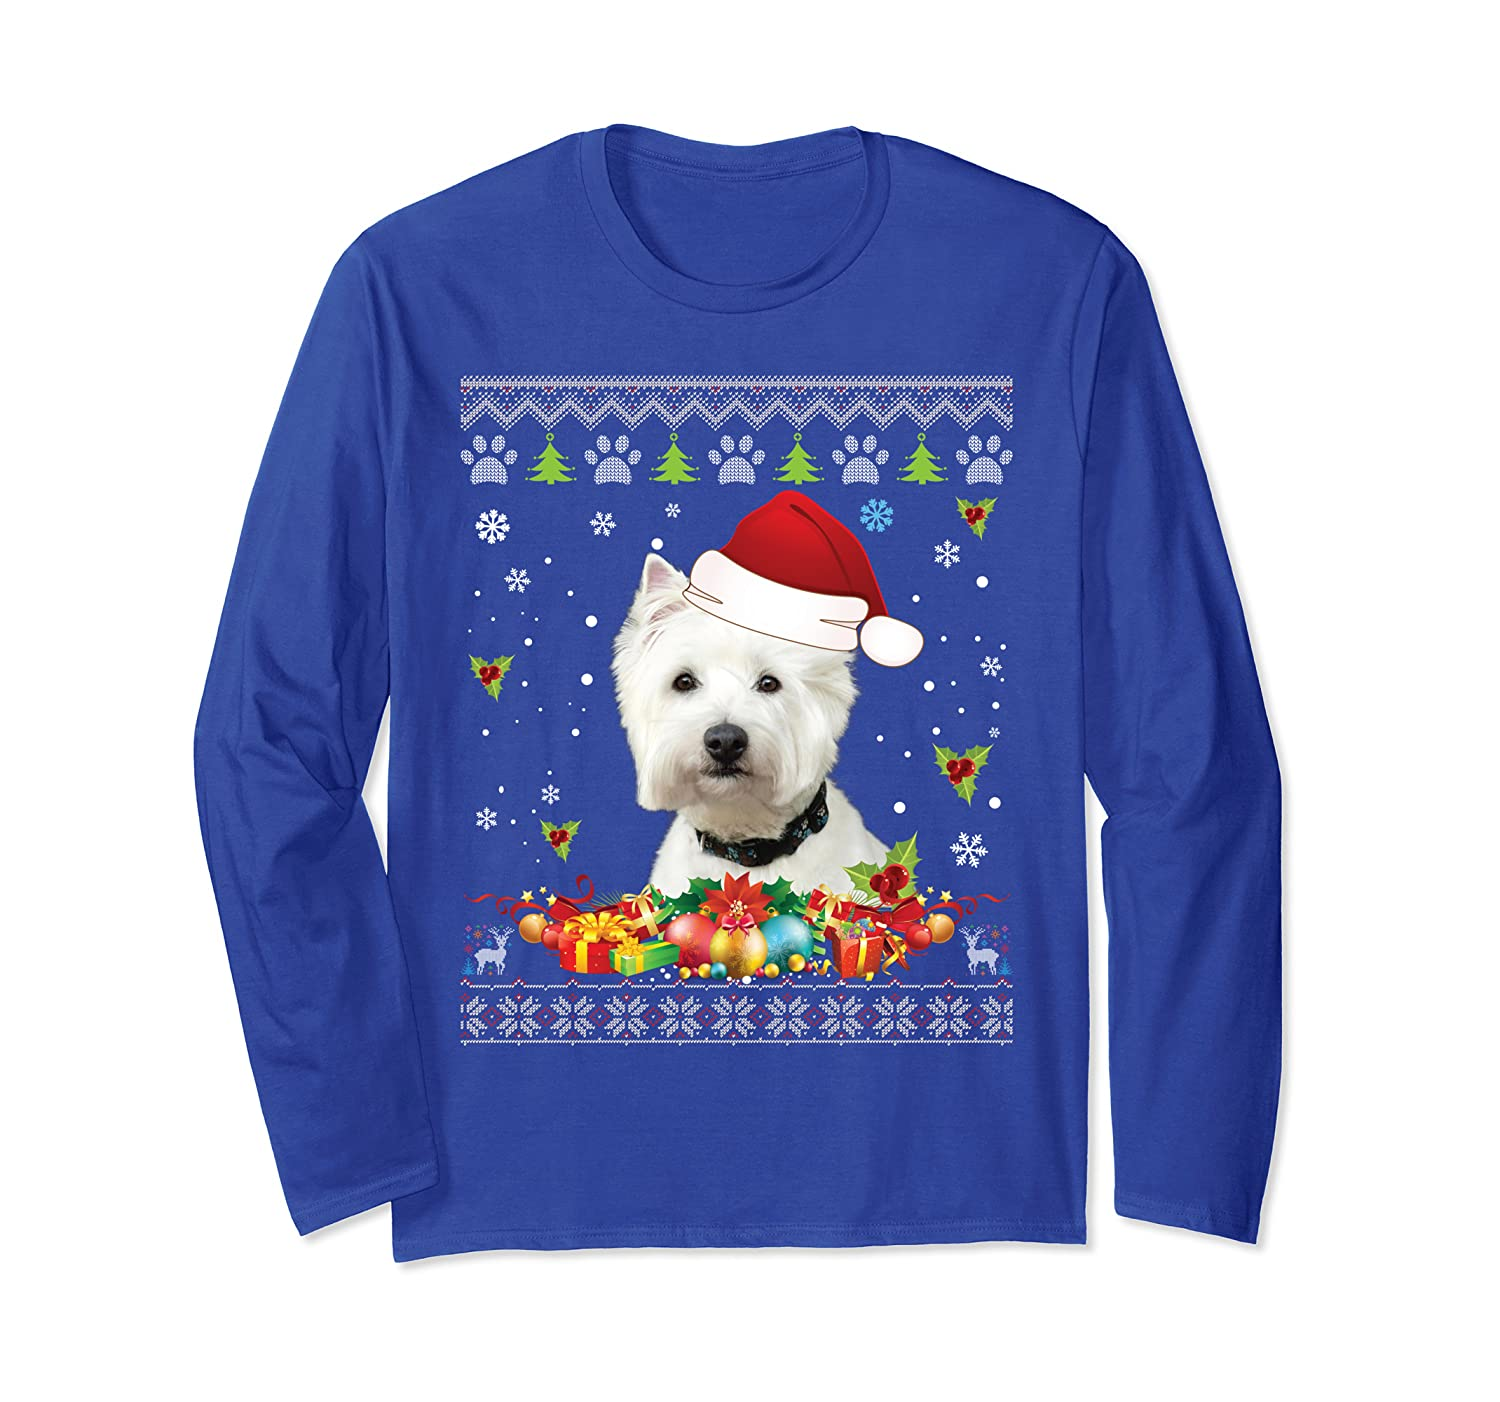 Merry Christmas Westie Dog Ugly Sweater Santa Claus Lover Long Sleeve T-Shirt